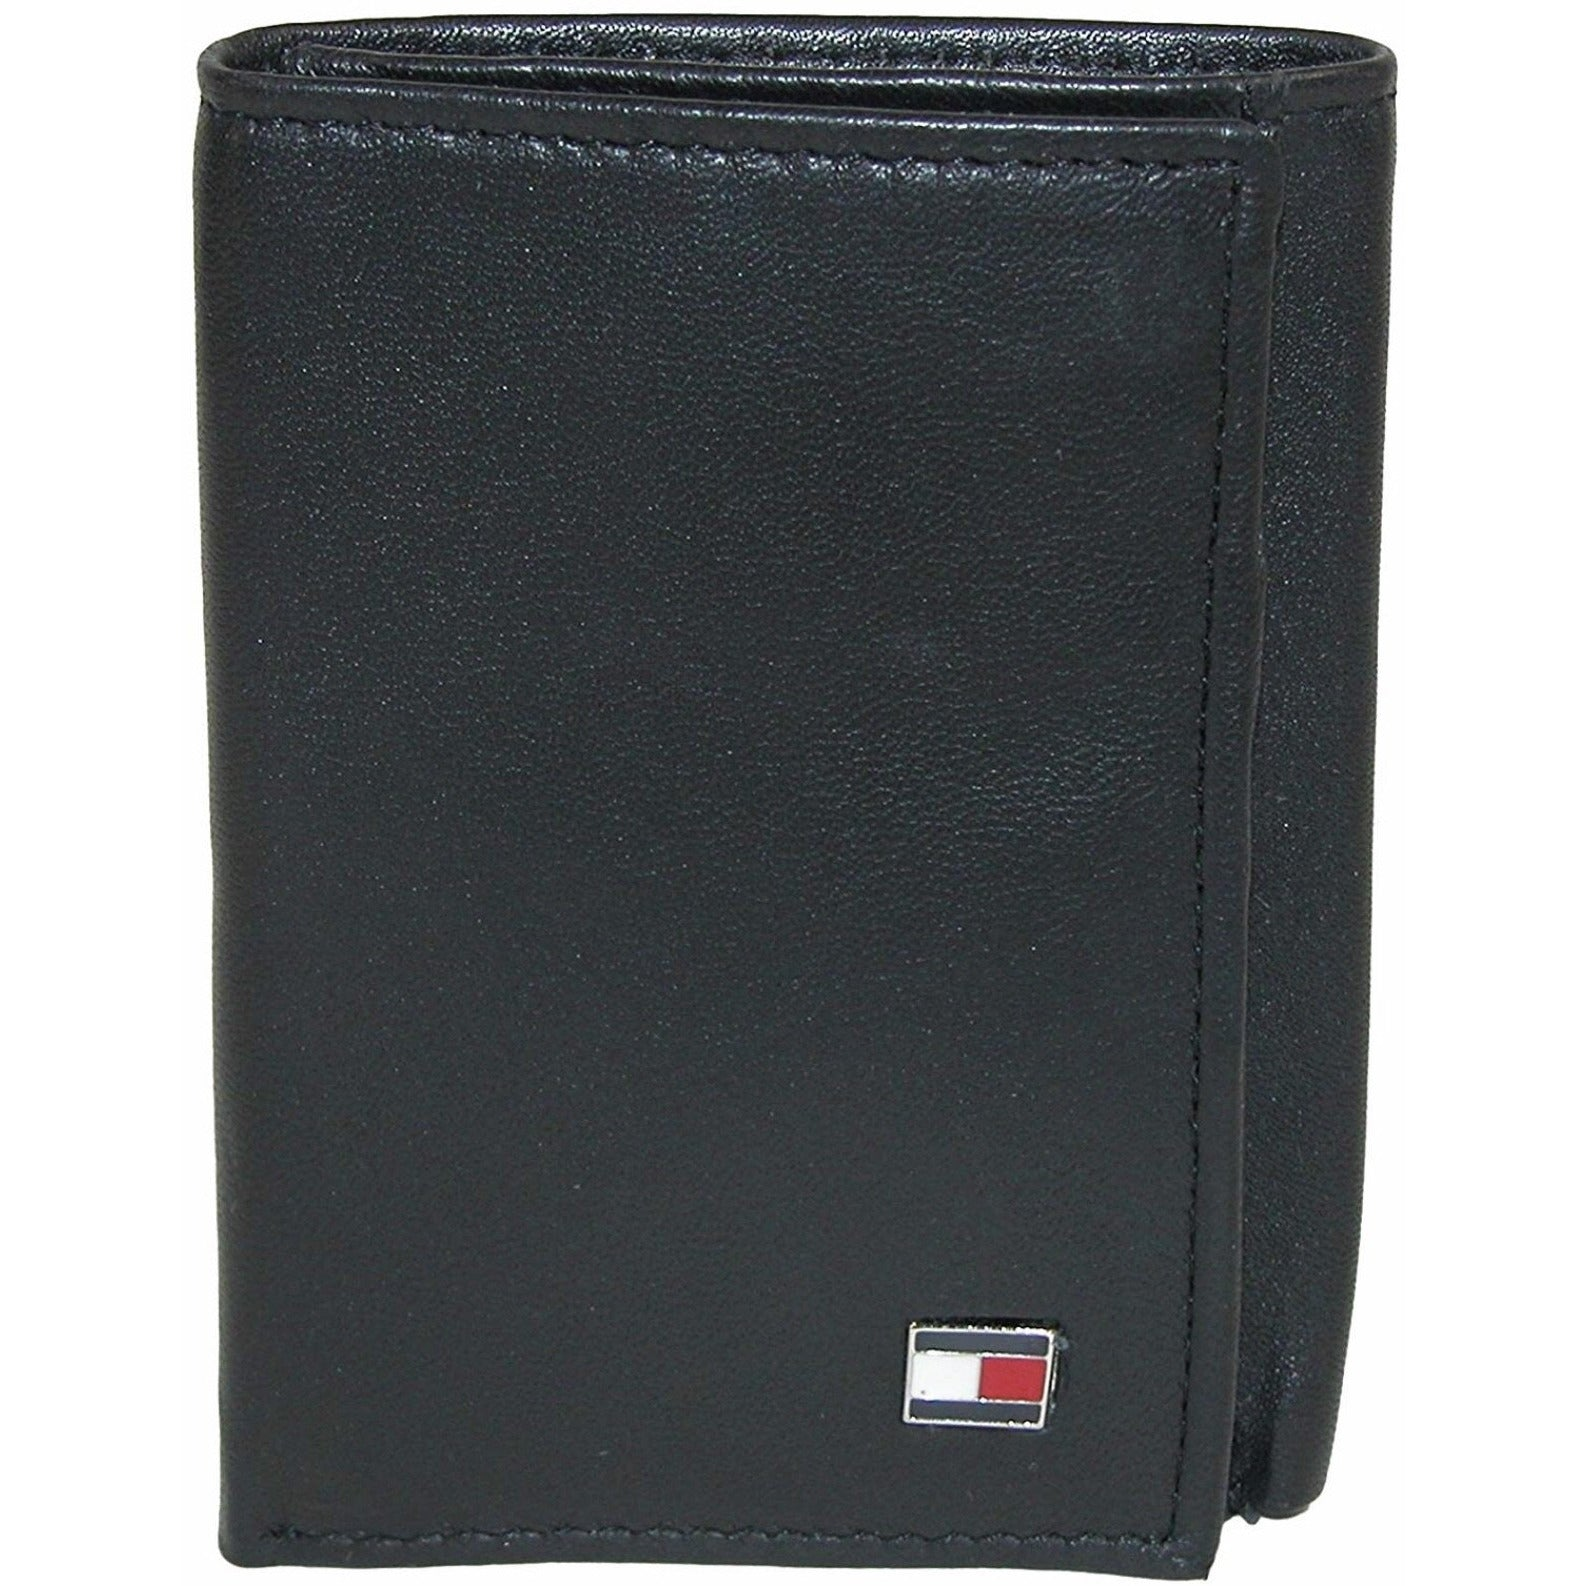 Tommy Hilfiger 31TL11X018 001 Men's Leather Trifold Wallet Oxford Black